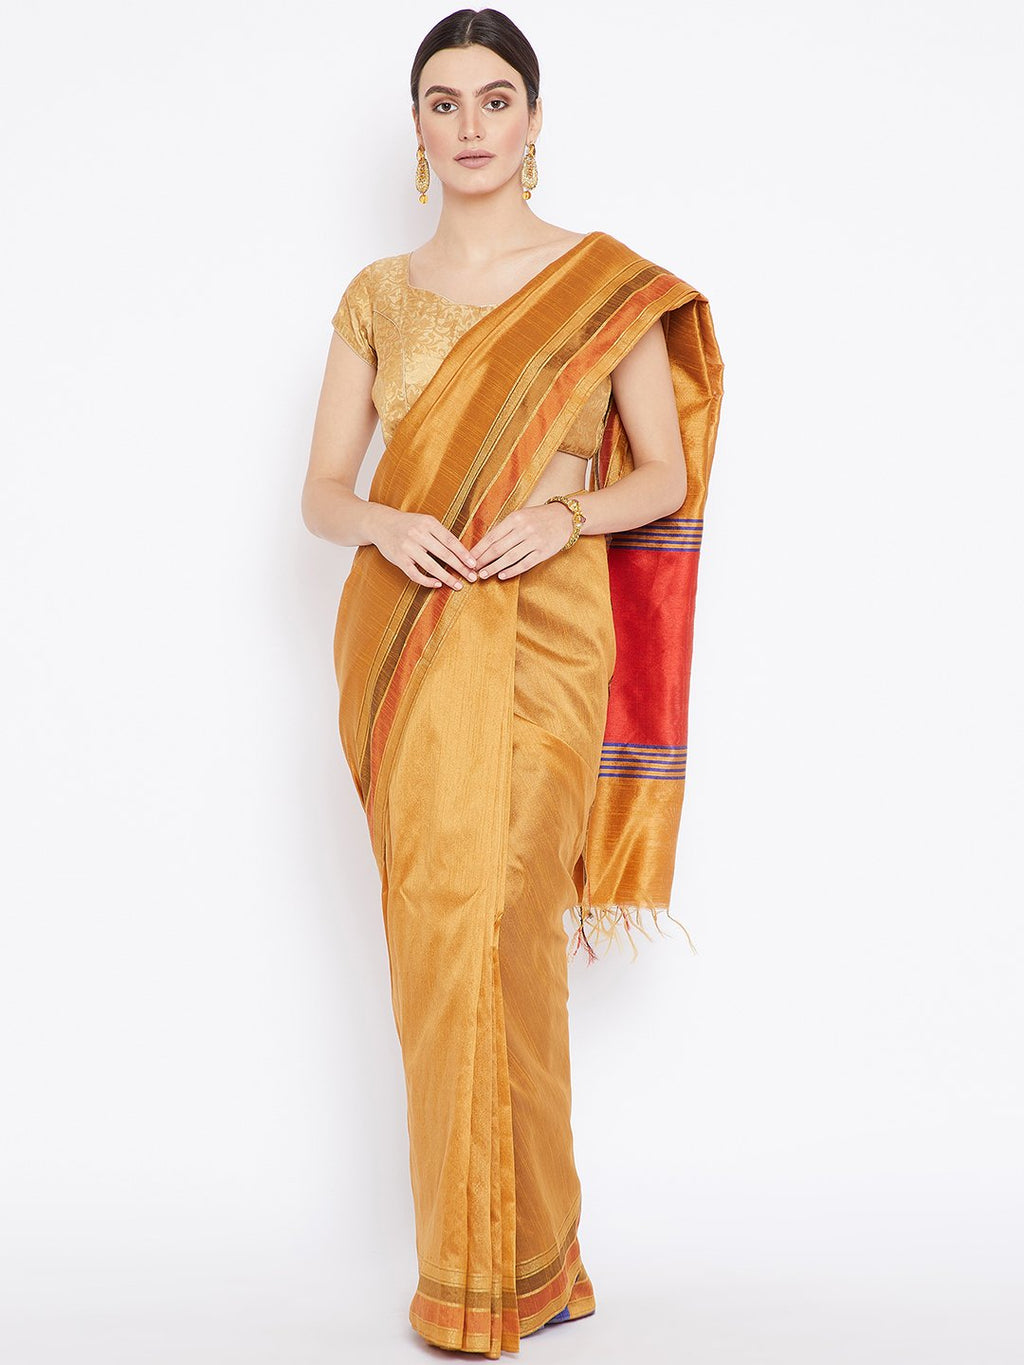 Gold-Coloured Tussar Woven Design Handloom Saree-Saree-Kalakari India-PRTUSA0001-Ahimsa Silk, Chattisgarh Kosa, Cruelty Free, Geographical Indication, Hand Woven, Sarees, Silk, Sustainable Fabrics, Traditional Weave, Tussar-[Linen,Ethnic,wear,Fashionista,Handloom,Handicraft,Indigo,blockprint,block,print,Cotton,Chanderi,Blue, latest,classy,party,bollywood,trendy,summer,style,traditional,formal,elegant,unique,style,hand,block,print, dabu,booti,gift,present,glamorous,affordable,collectible,Sari,Sar